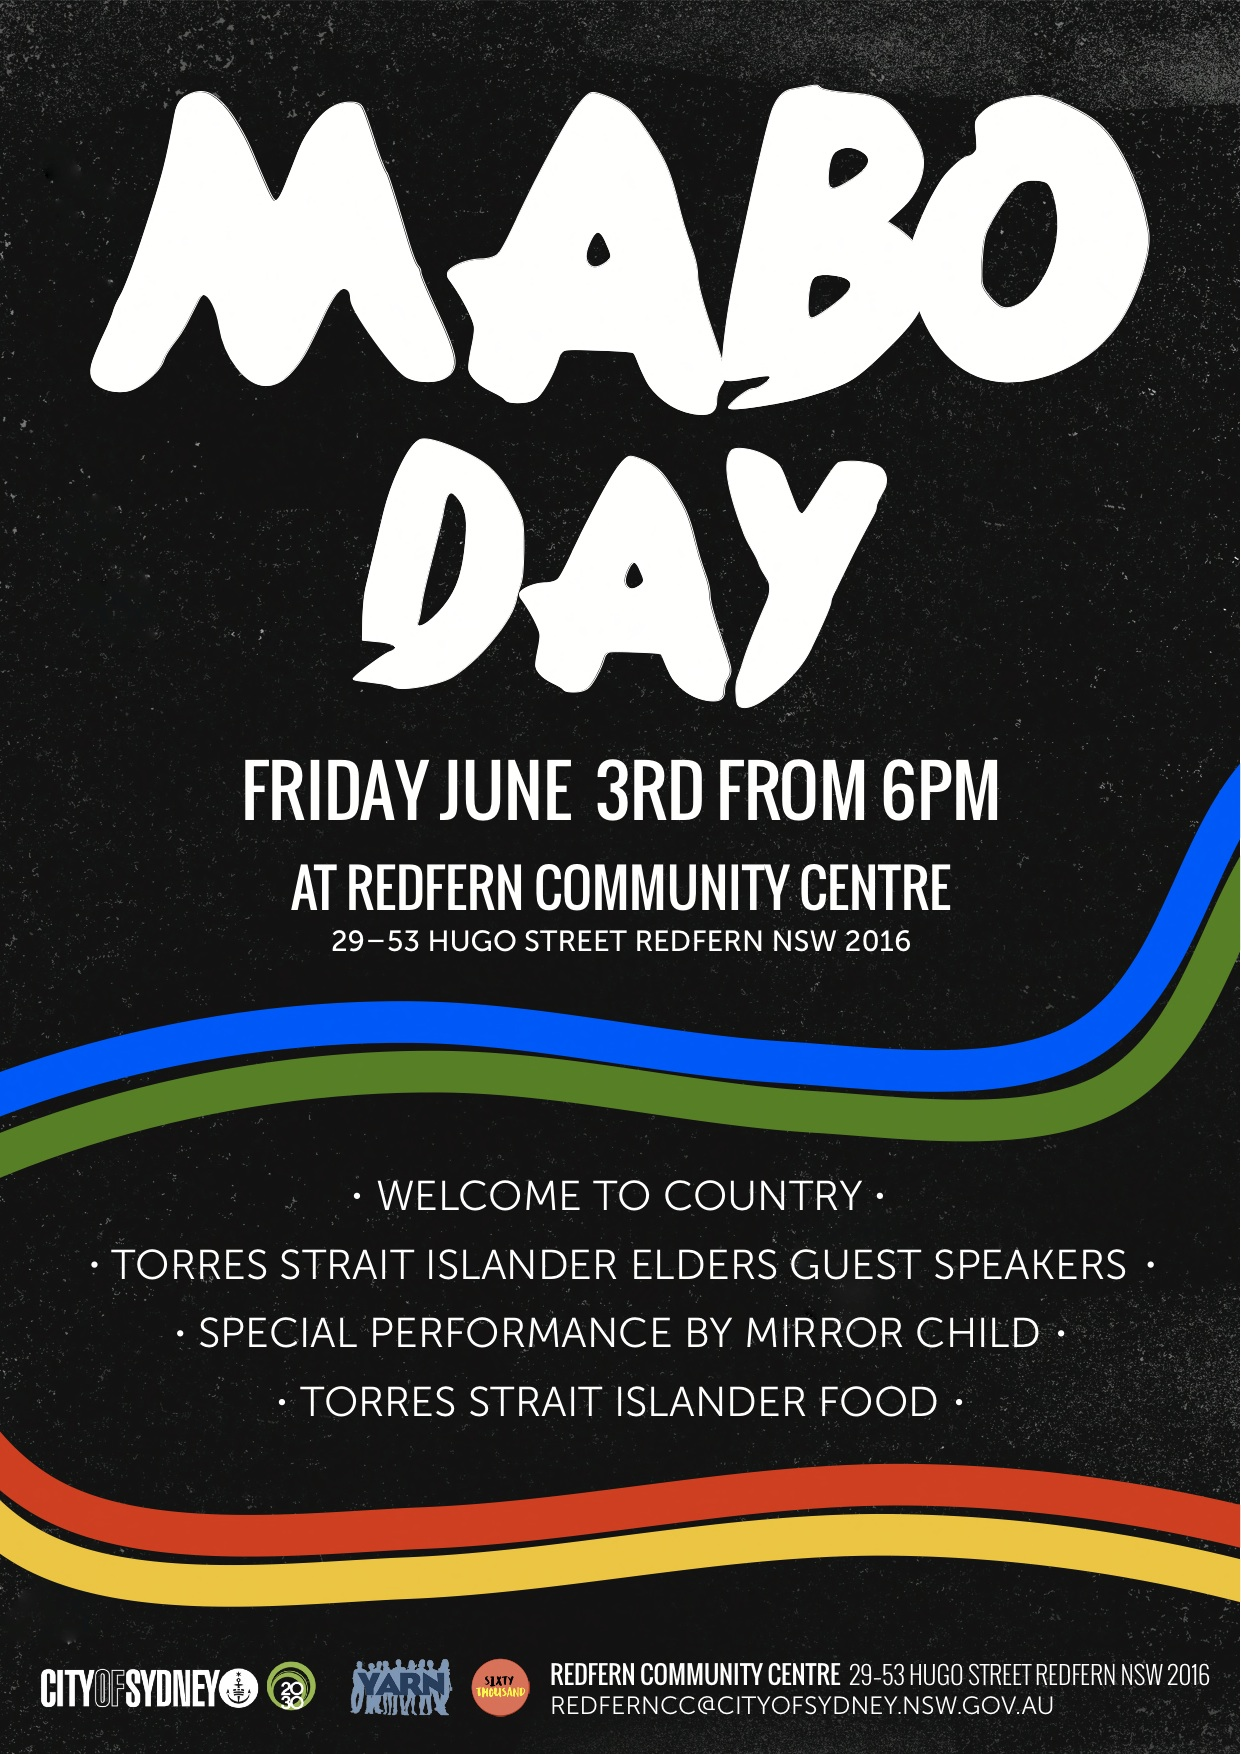 2016 June 3rd YARN Partners with the City of Sydney to host MABO DAY at the Redfern Community Centre